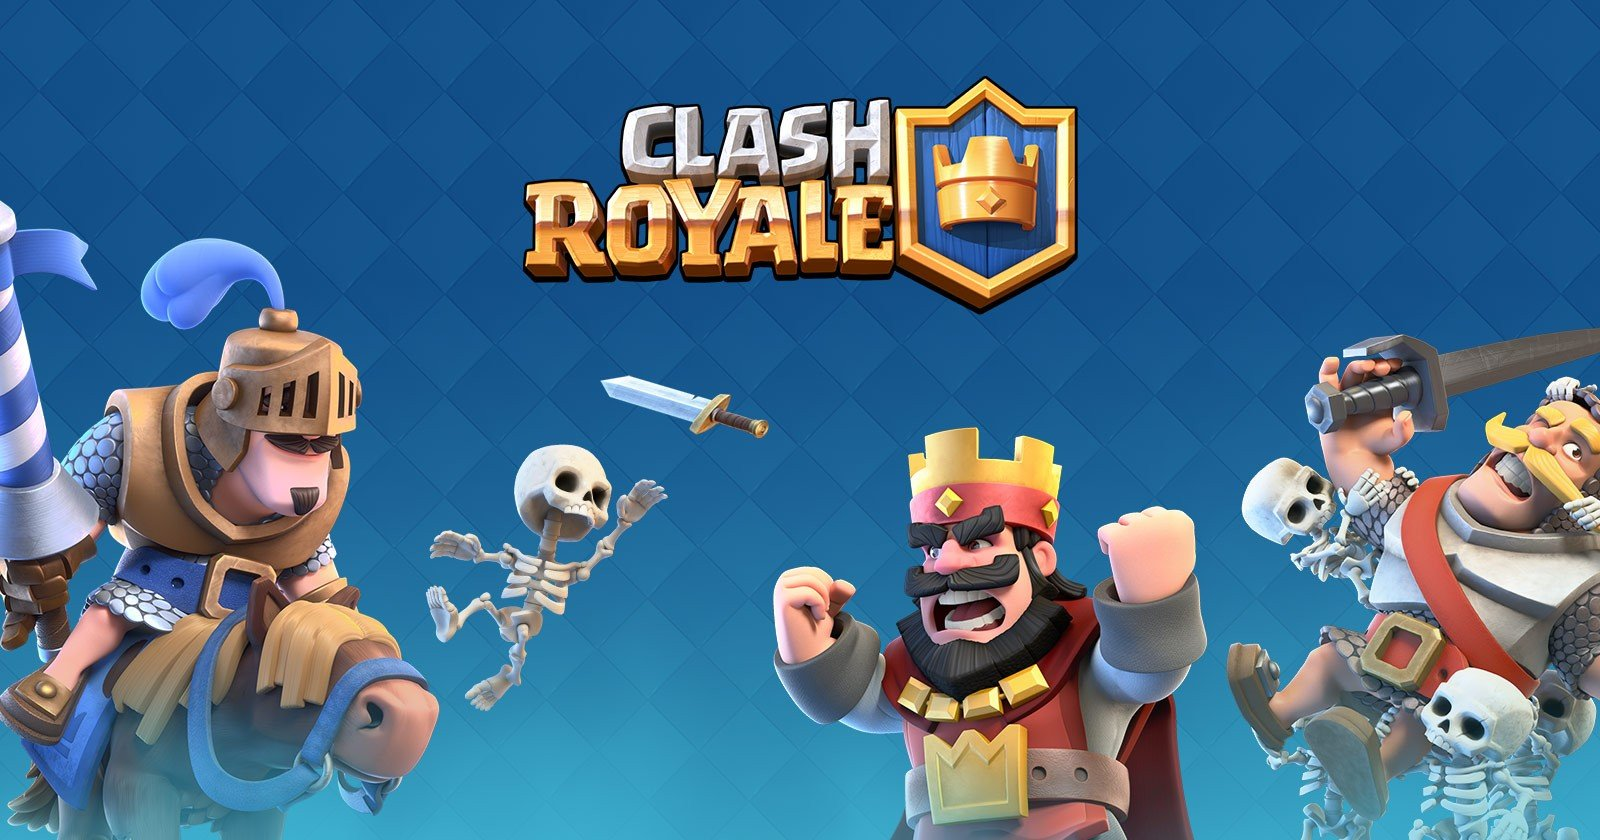 Clash Royale -  My First Impressions 1